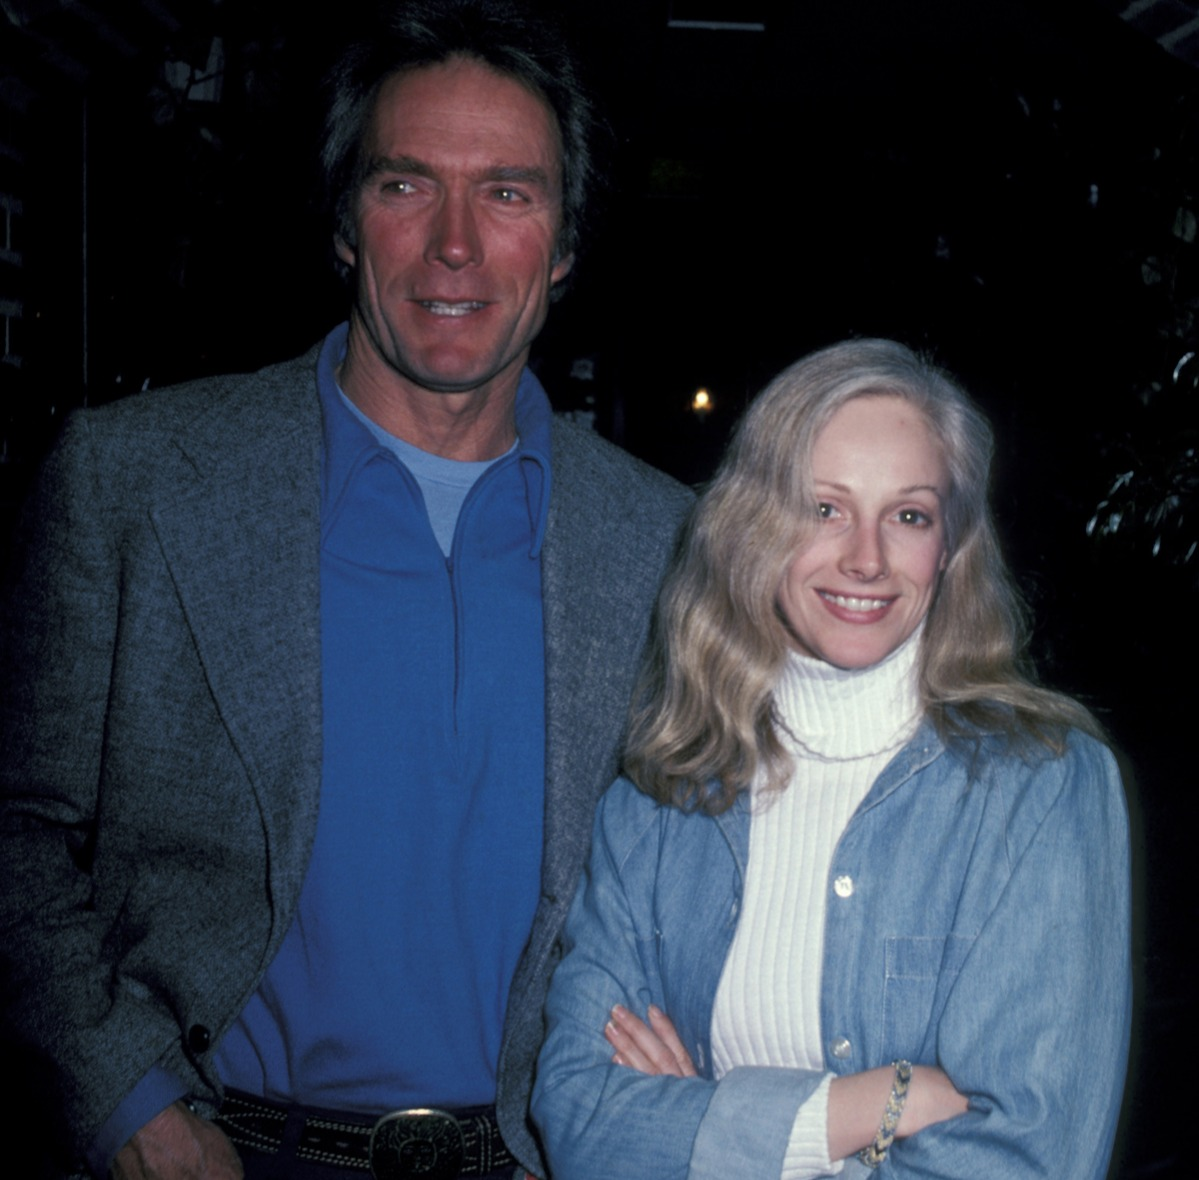 Clint Eastwood and Sondra Locke during Clint Eastwood and Sondra Locke Sighting at Adriano's Restaurant - January 14, 1982